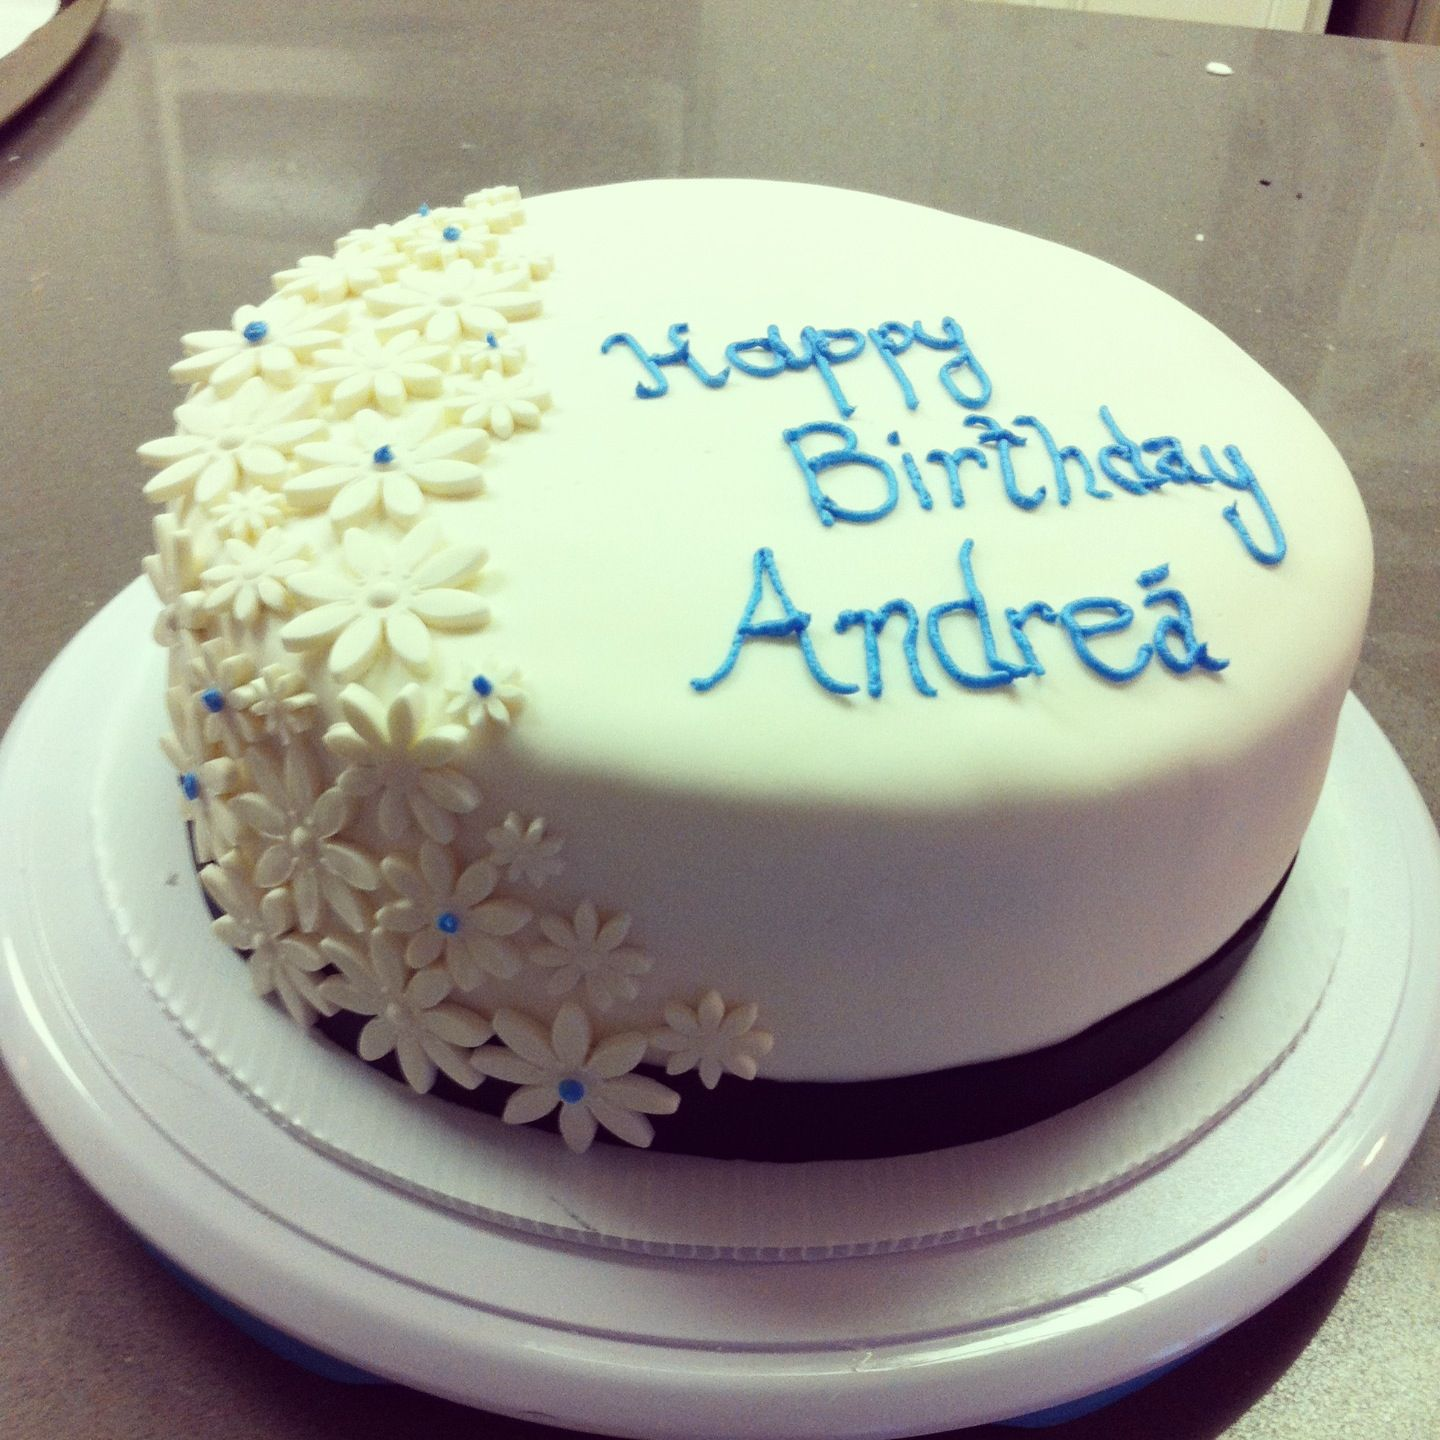 Simple Elegant Birthday Cake White With Vanilla Buttercream Filling Rolled Fondant Covering Gum Paste Flower Decorations